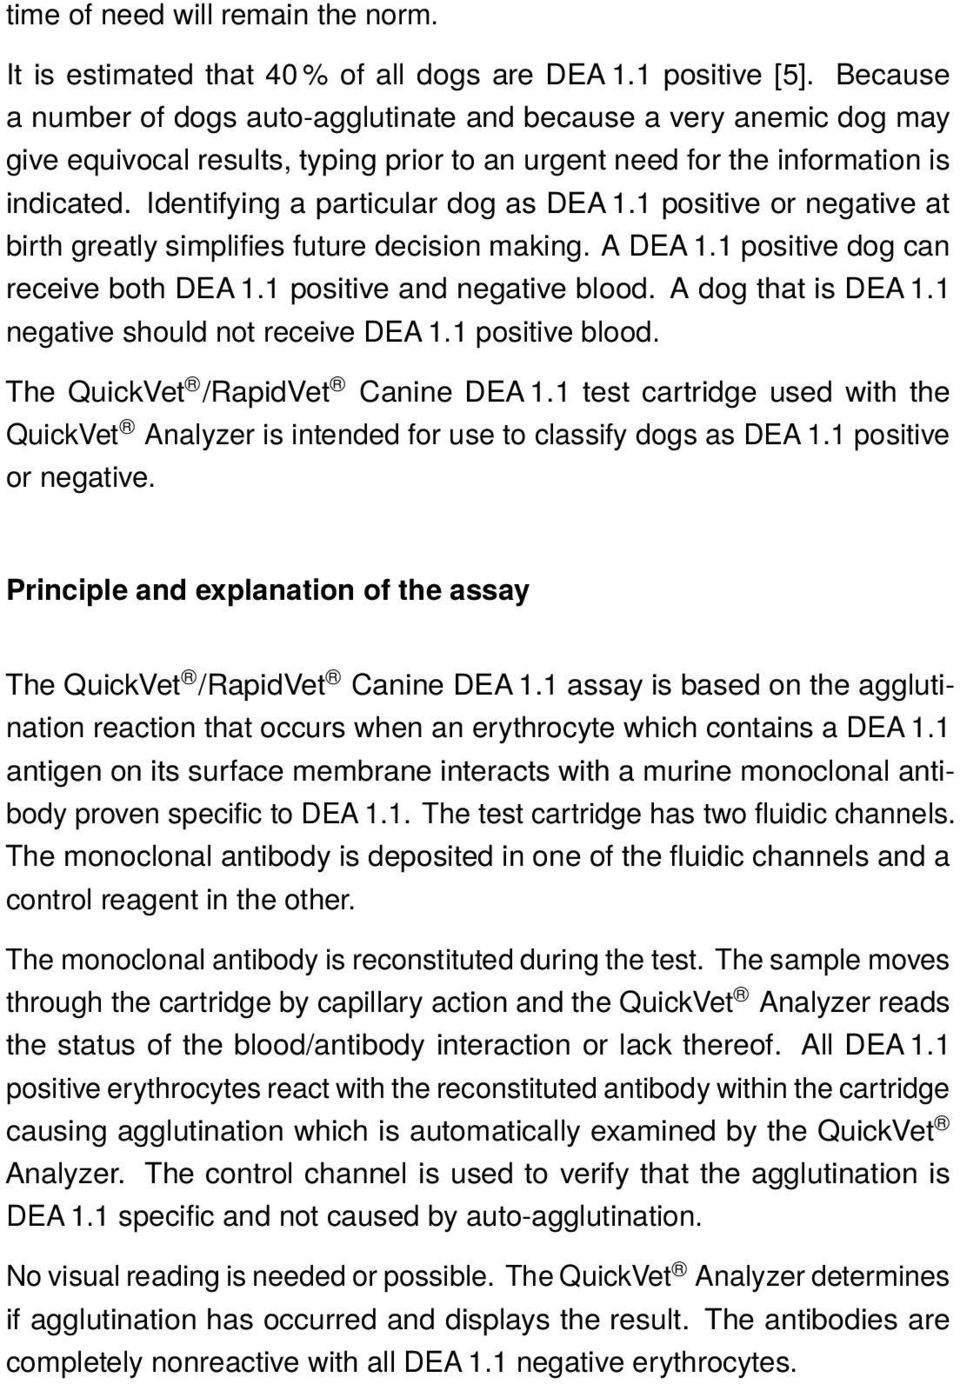 Identifying a particular dog as DEA 1.1 positive or negative at birth greatly simplifies future decision making. A DEA 1.1 positive dog can receive both DEA 1.1 positive and negative blood.